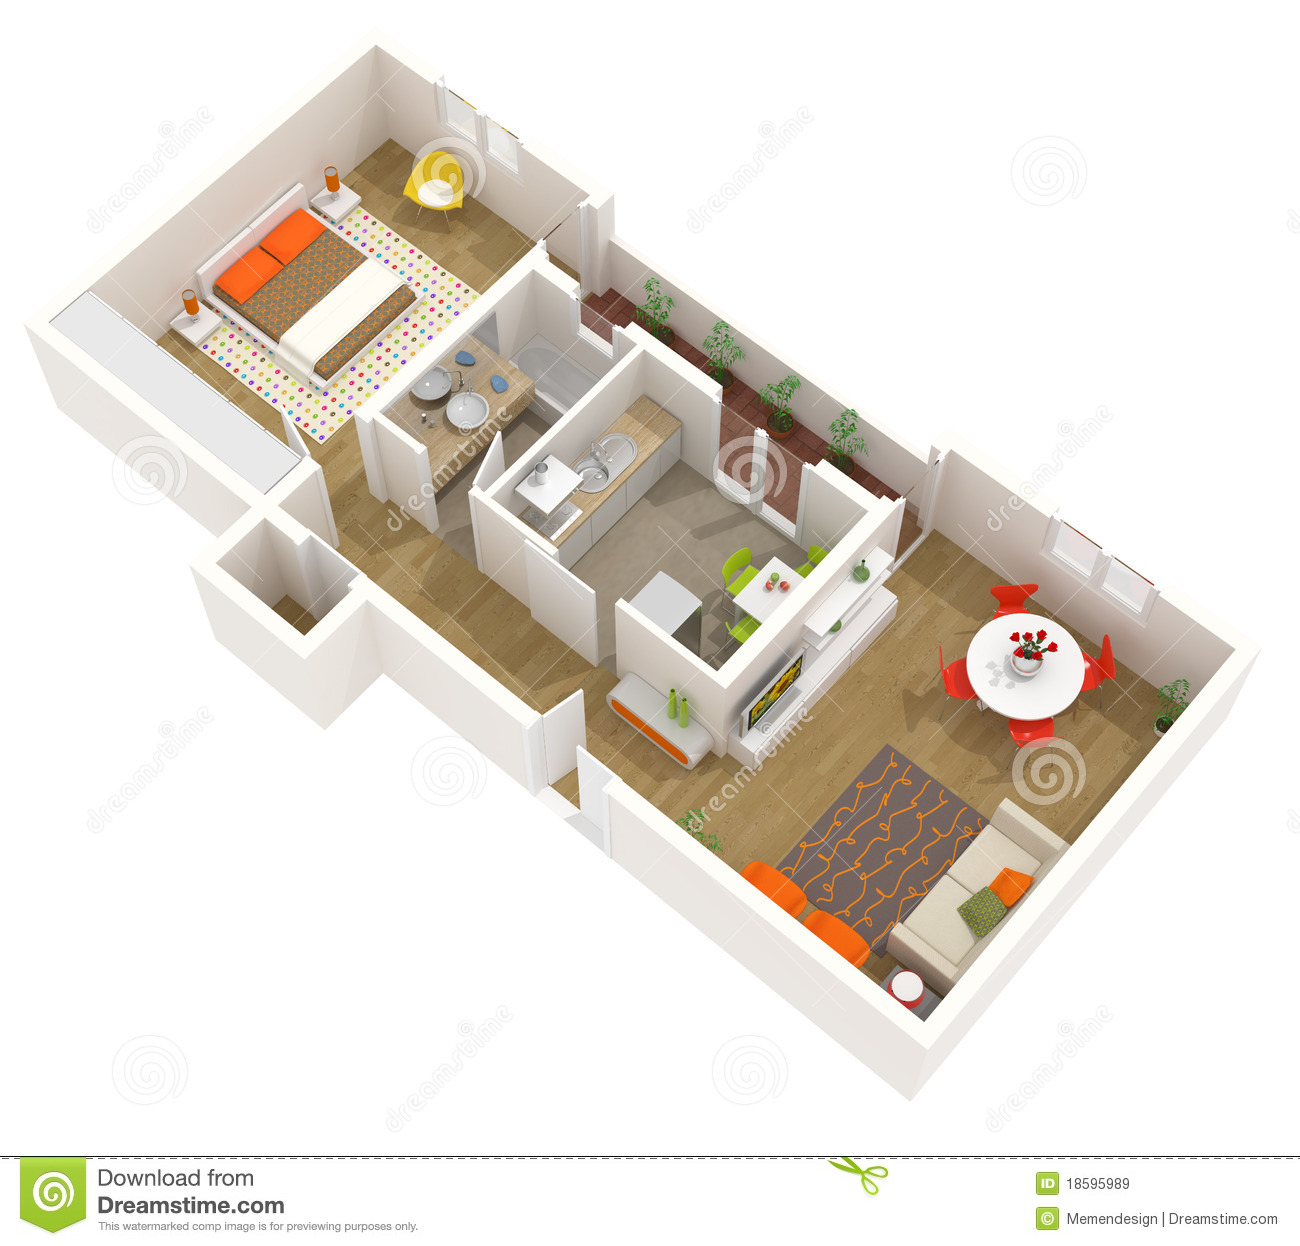 Apartment interior design 3d floor plan stock for Interior design floor plan